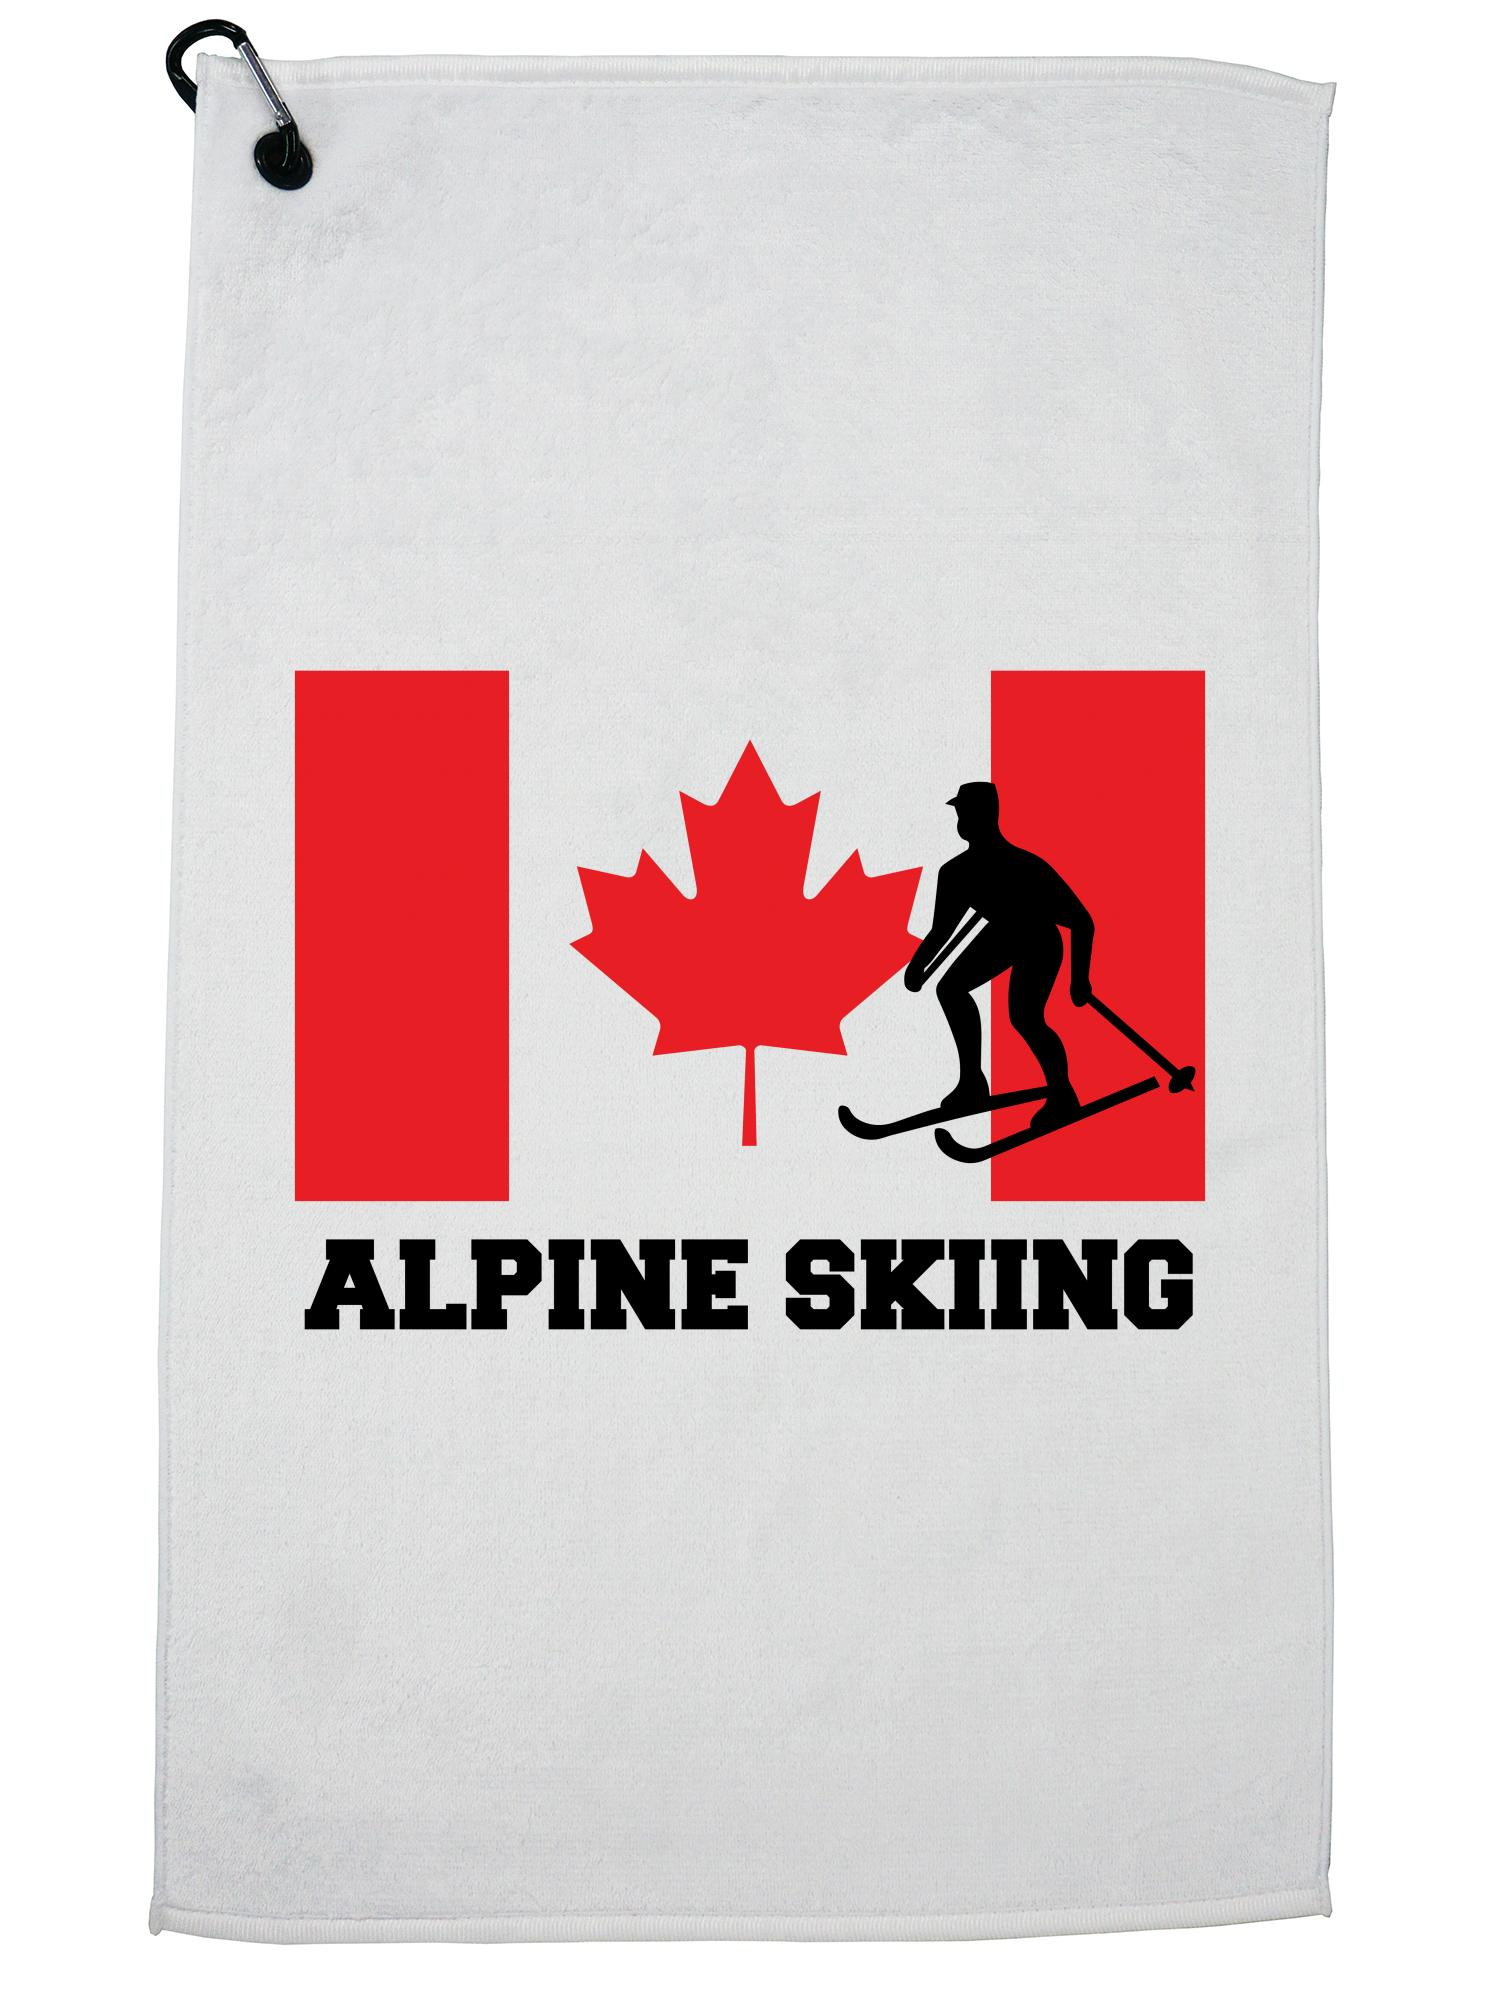 Canada Olympic Alpine Skiing Flag Silhouette Golf Towel with Carabiner Clip by Hollywood Thread